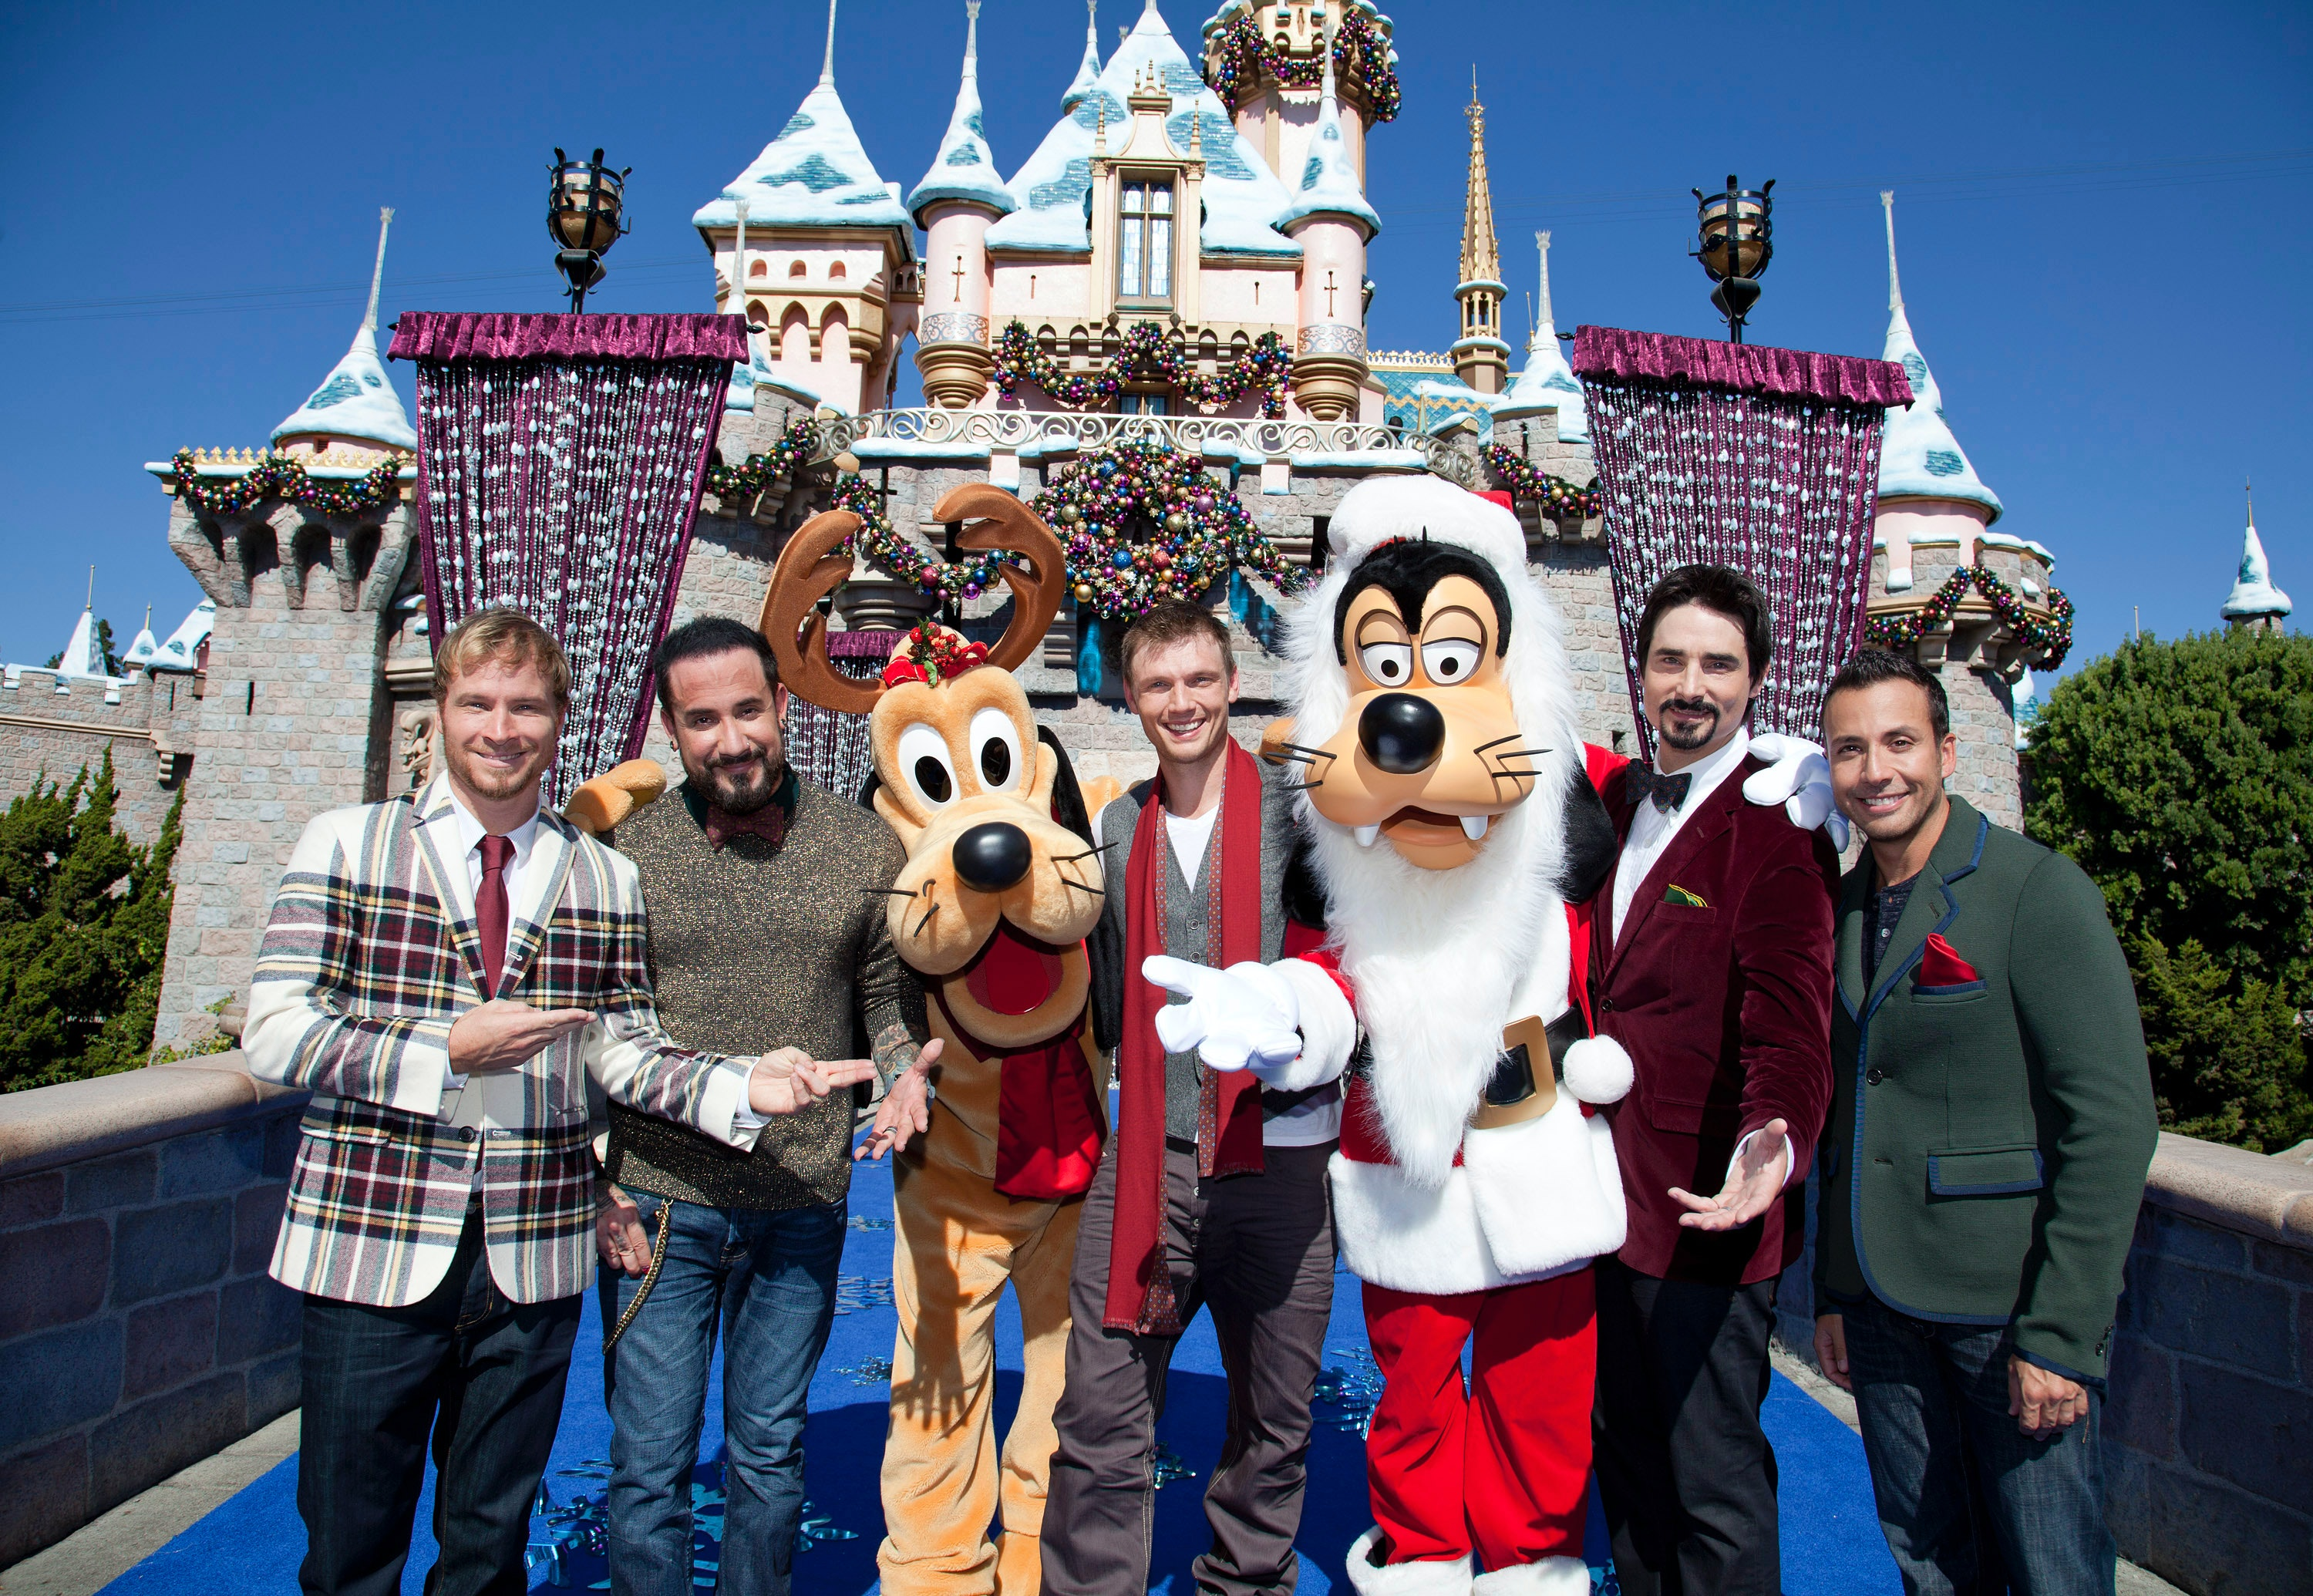 Backstreet Boys Christmas.A Backstreet Boys Christmas Album Is In The Works It Will